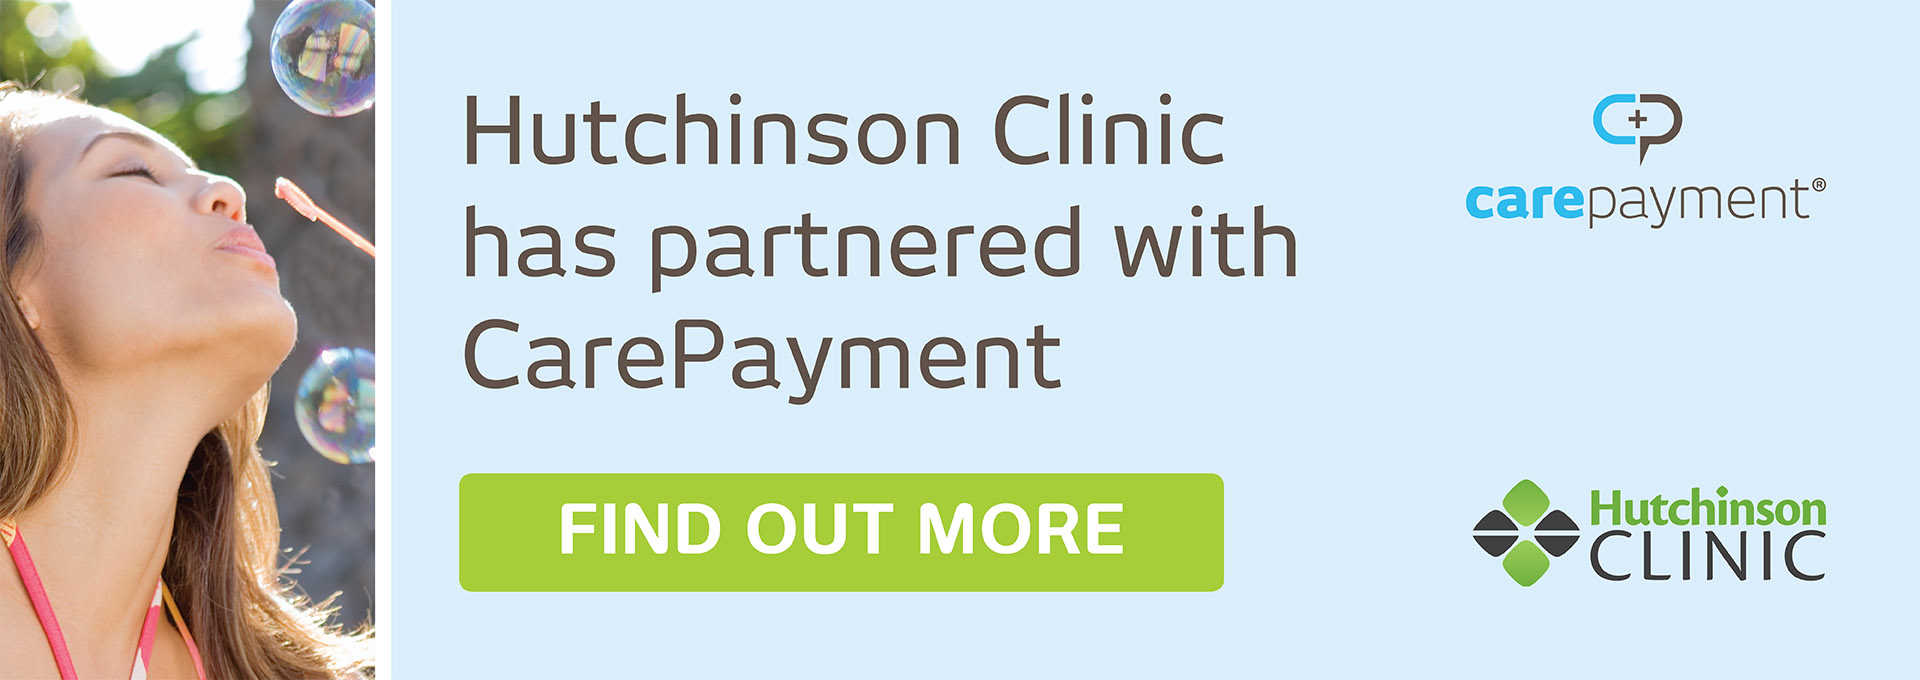 The Hutchinson Clinic is now partnering with CarePayment to make affordable financing options available to patients who need help paying their medical bills over time. Patients will be able to take advantage of their  zero interest payment plans .